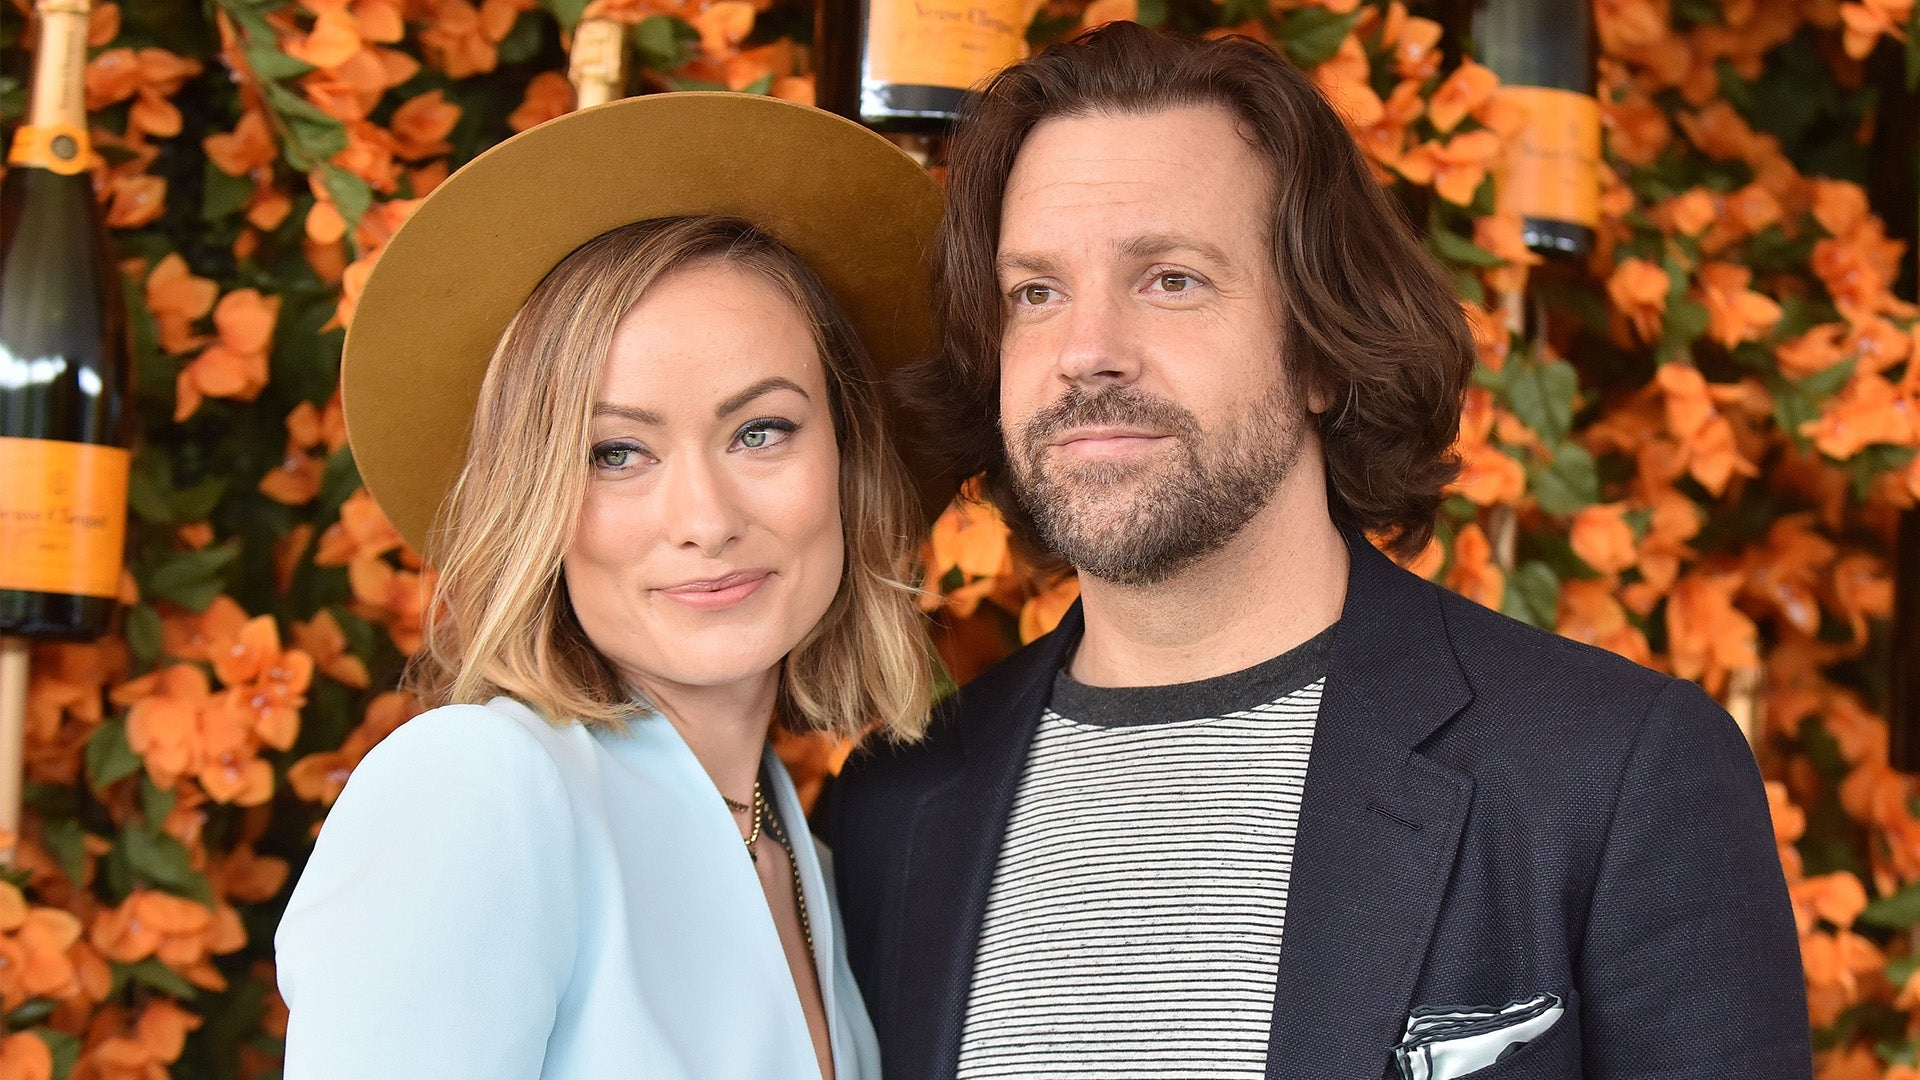 Olivia Wilde Spotted With Ex Jason Sudeikis After Hand-Holding Pics With  Harry Styles | Entertainment Tonight